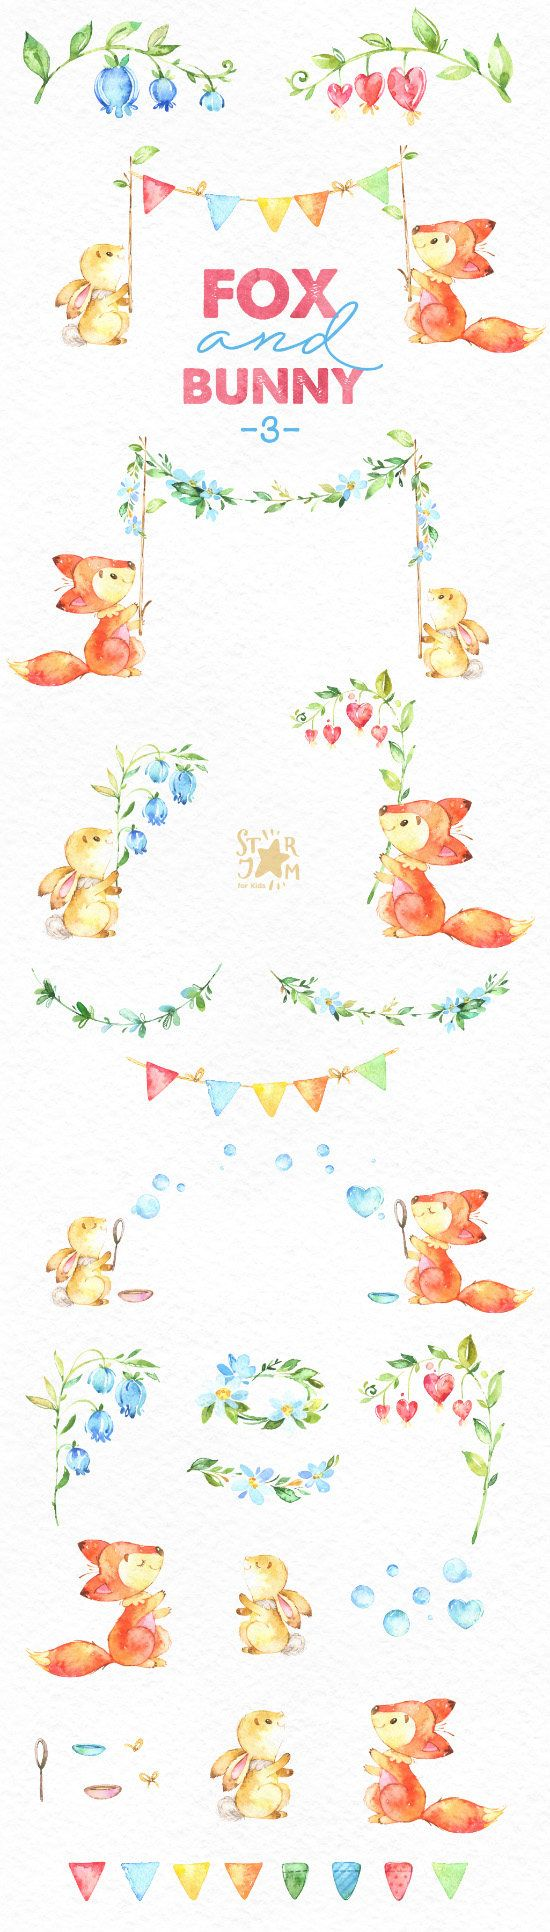 Fox and Bunny 3. Watercolor animal clipart, flowers